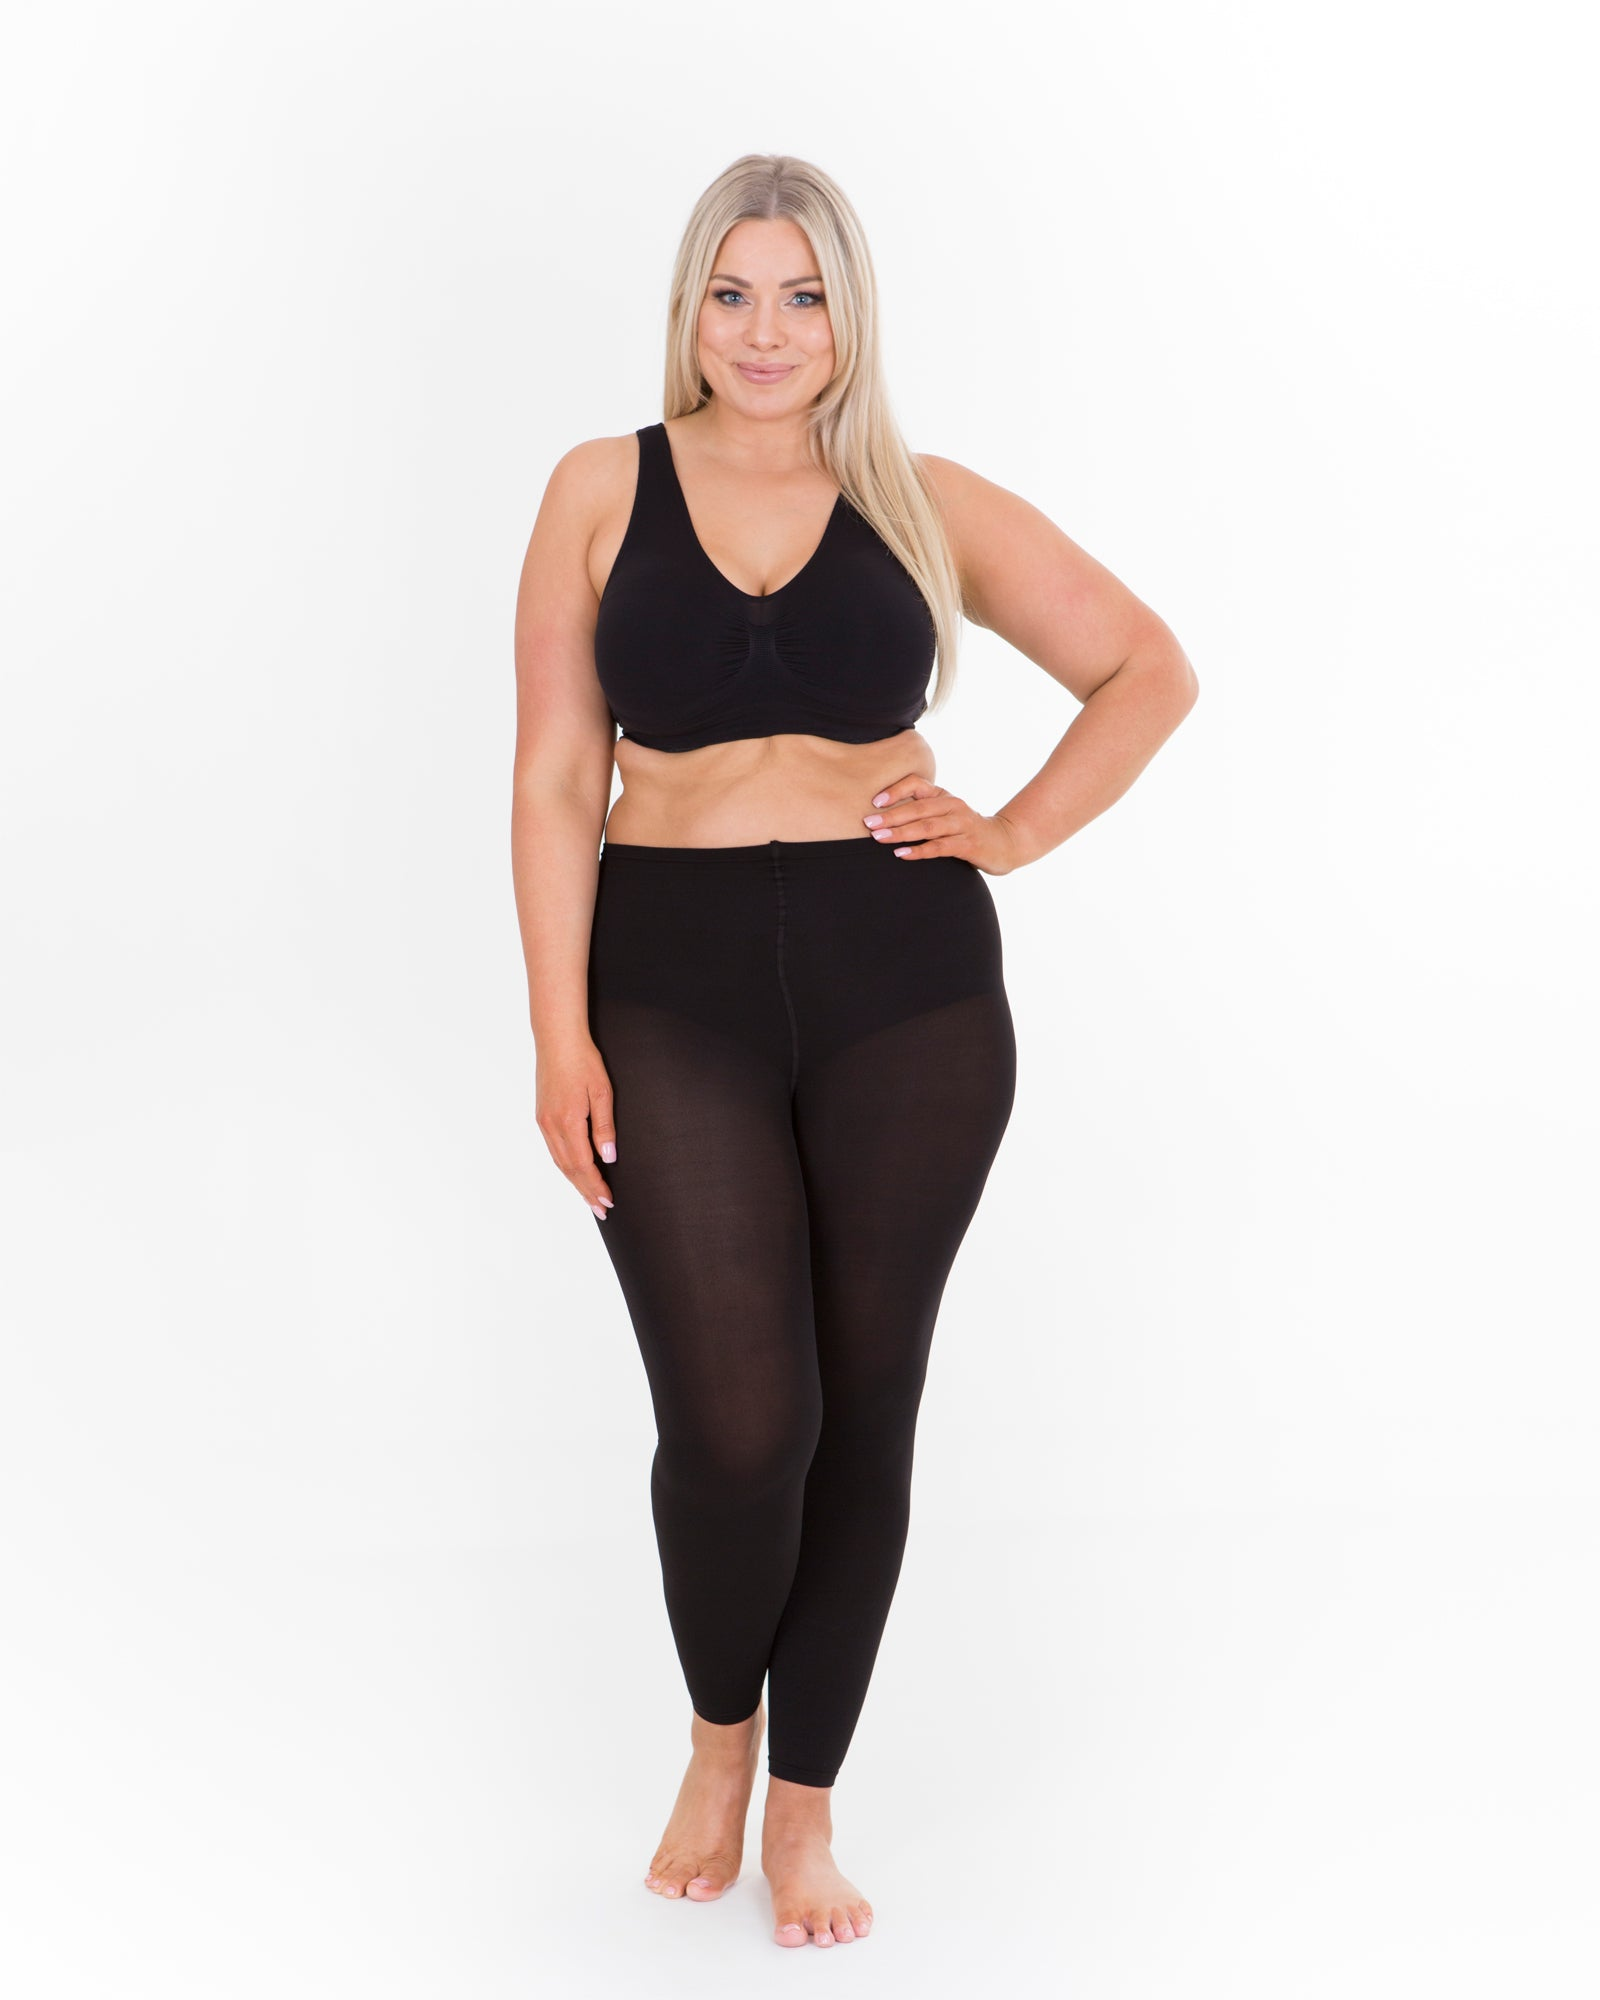 Sonsee Plus size footless tights